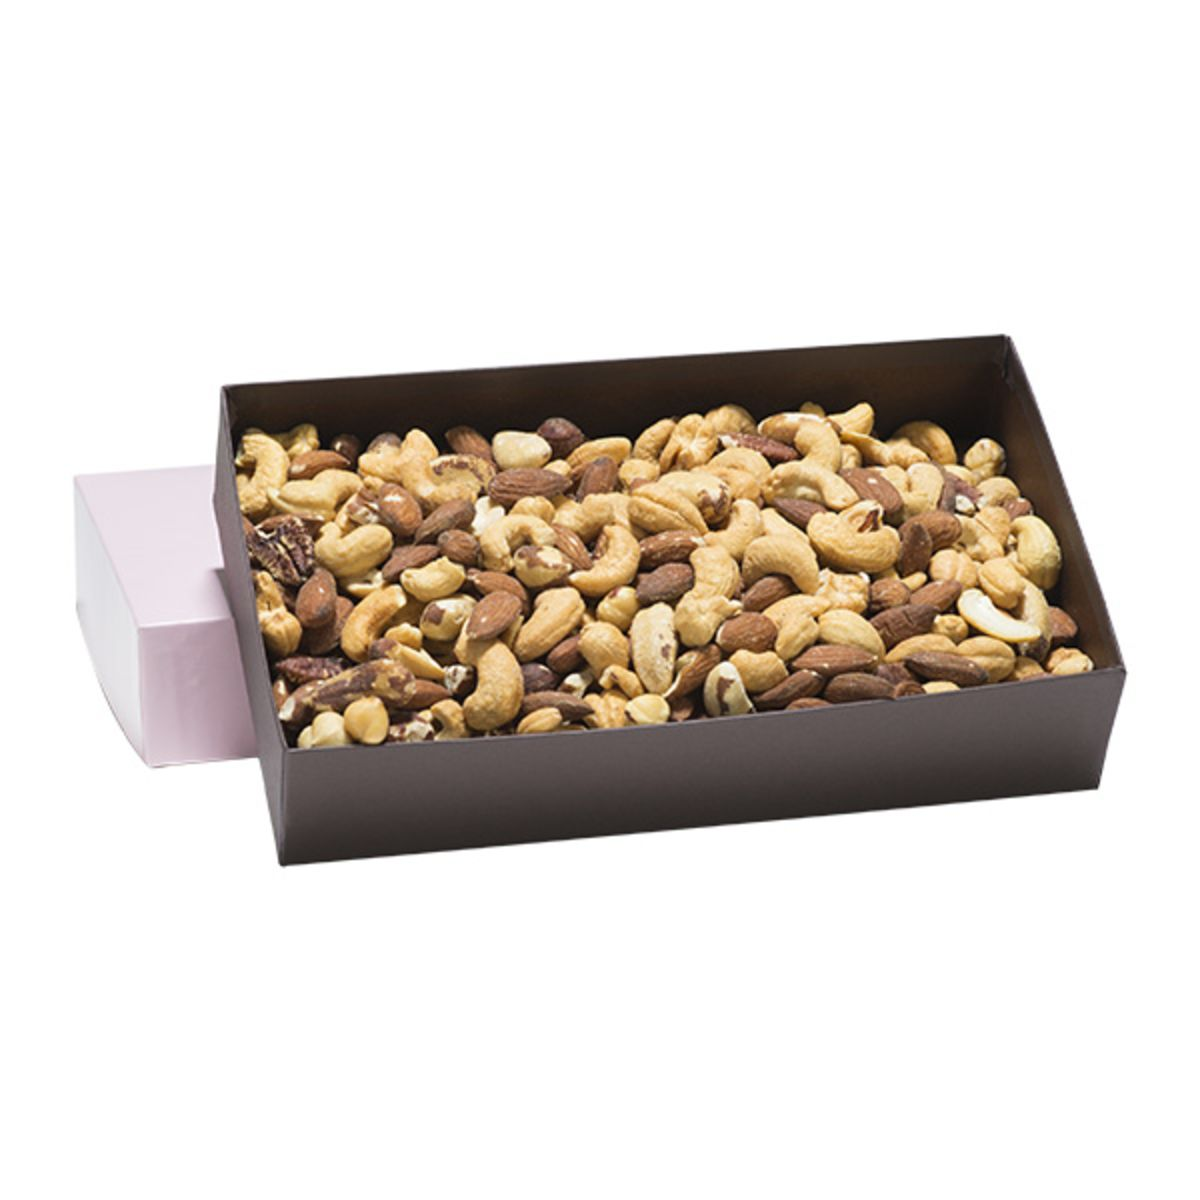 Roasted & Salted Deluxe Nut Blend